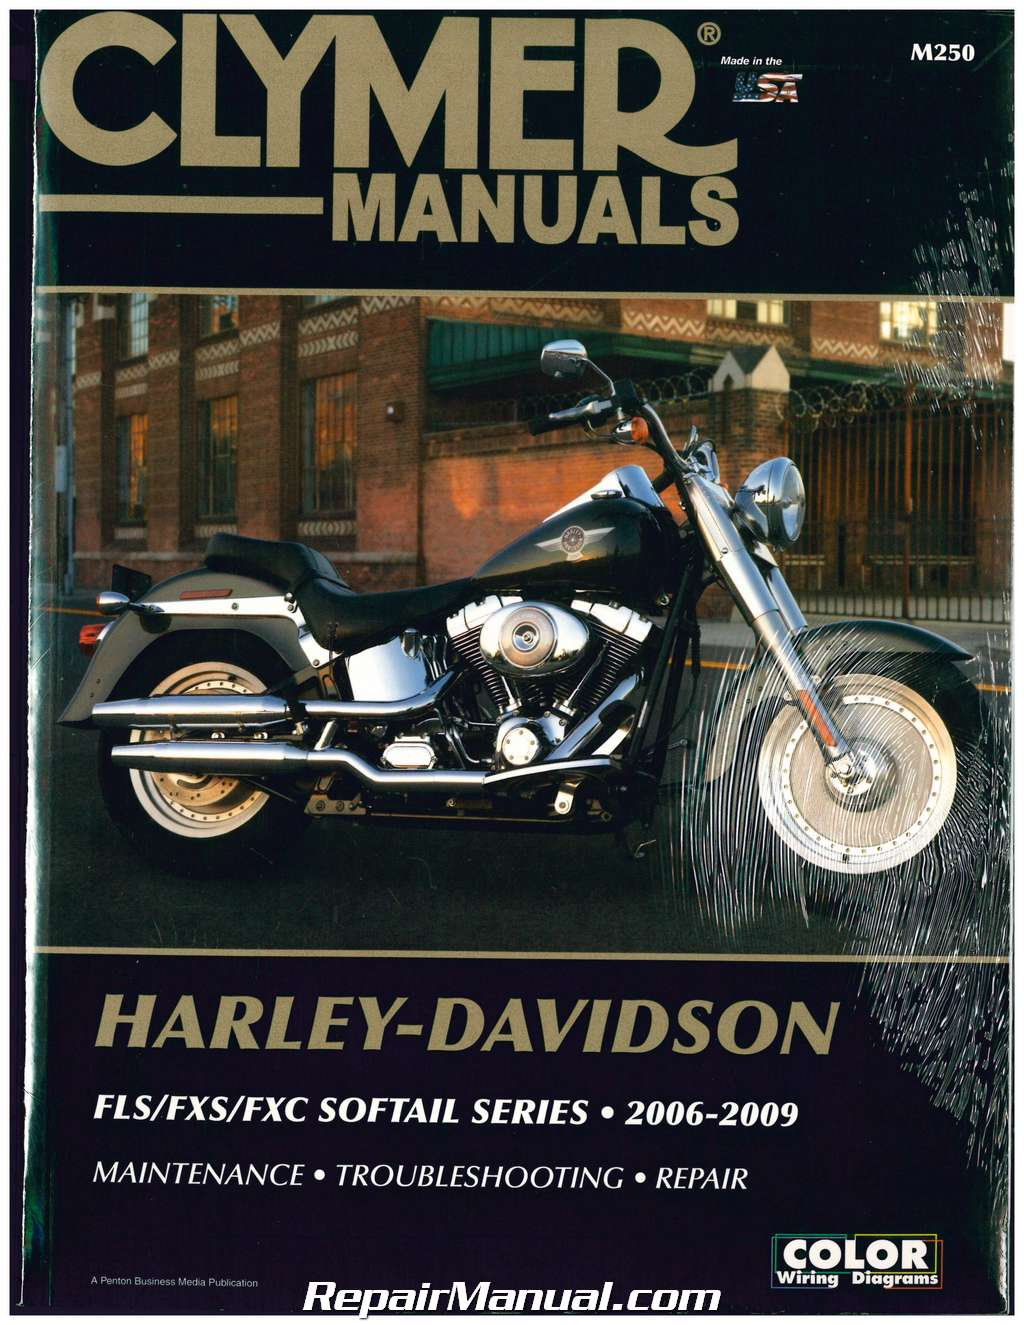 Clymer Harley Davidson Softail FLS FXS FXC Motorcycle Repair Manual  2006-2009